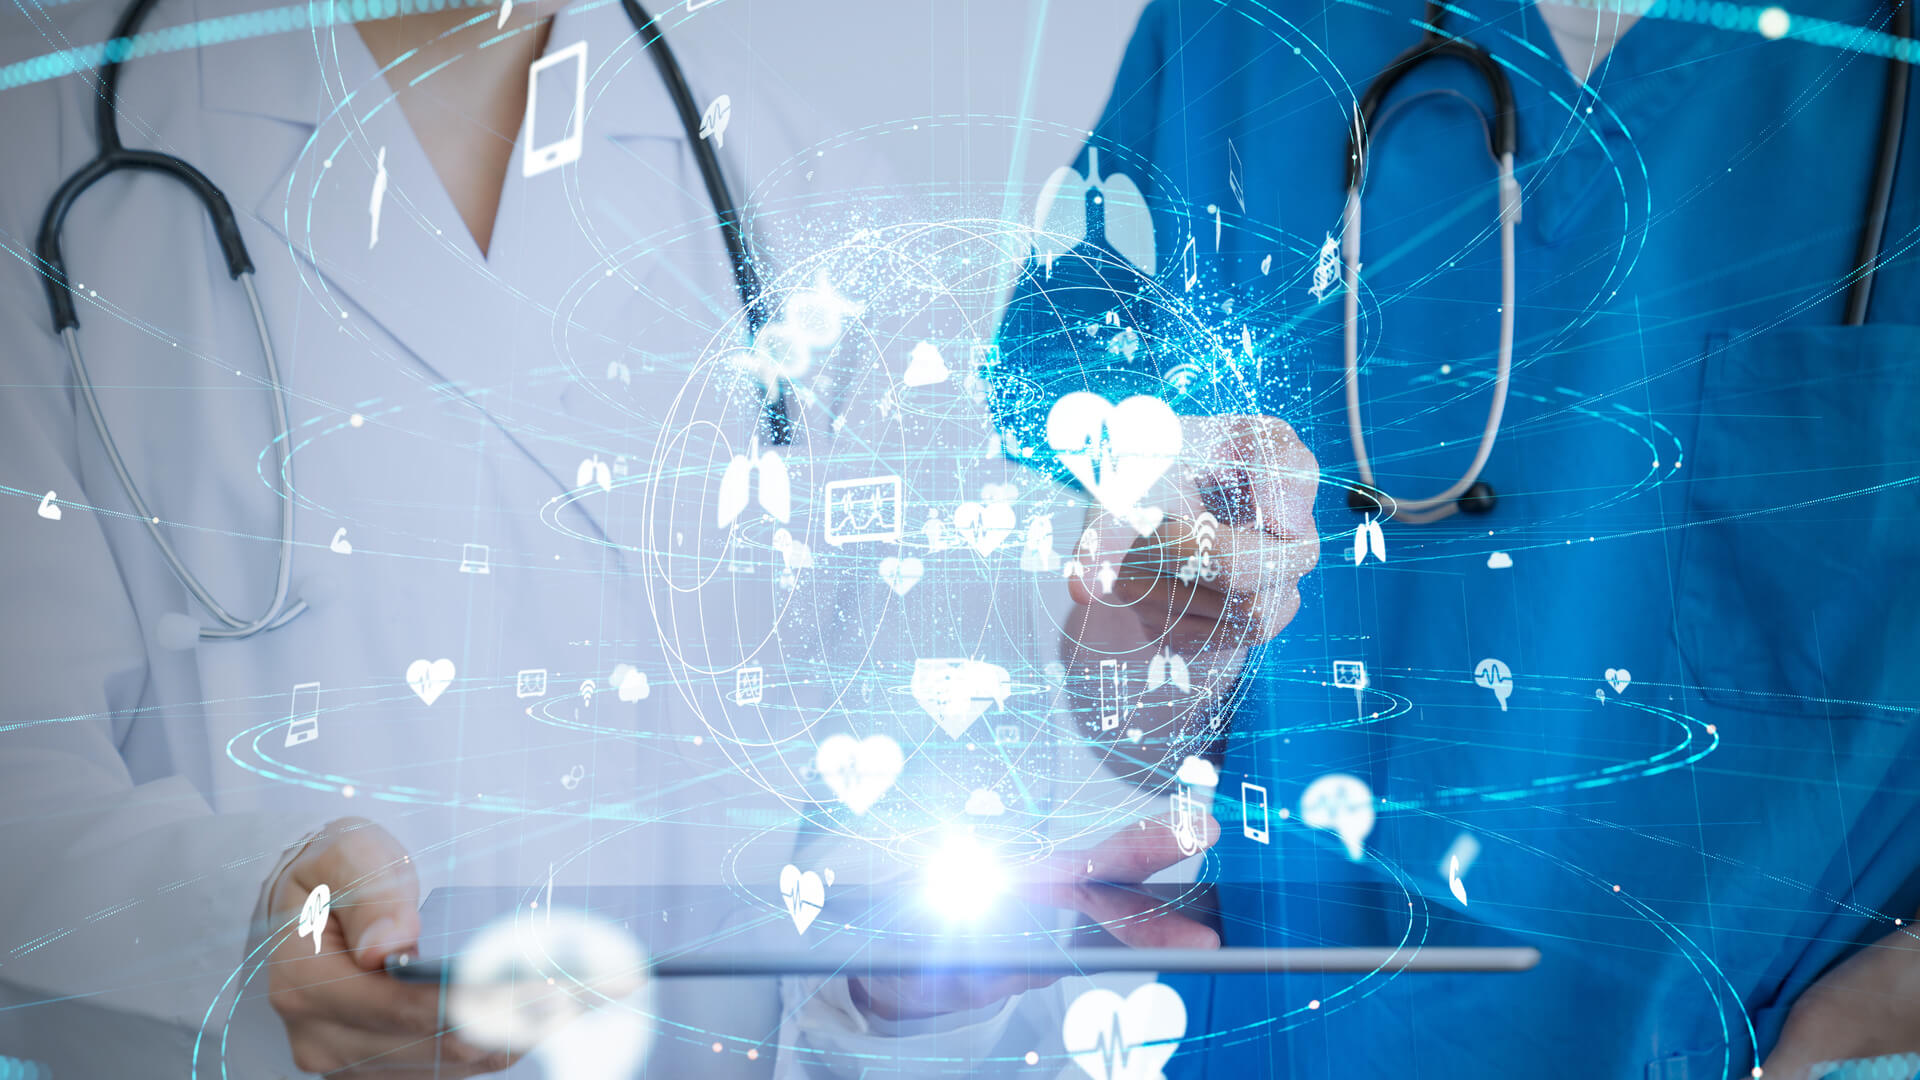 Why Non-acute Settings Need to Enter the Digital Age